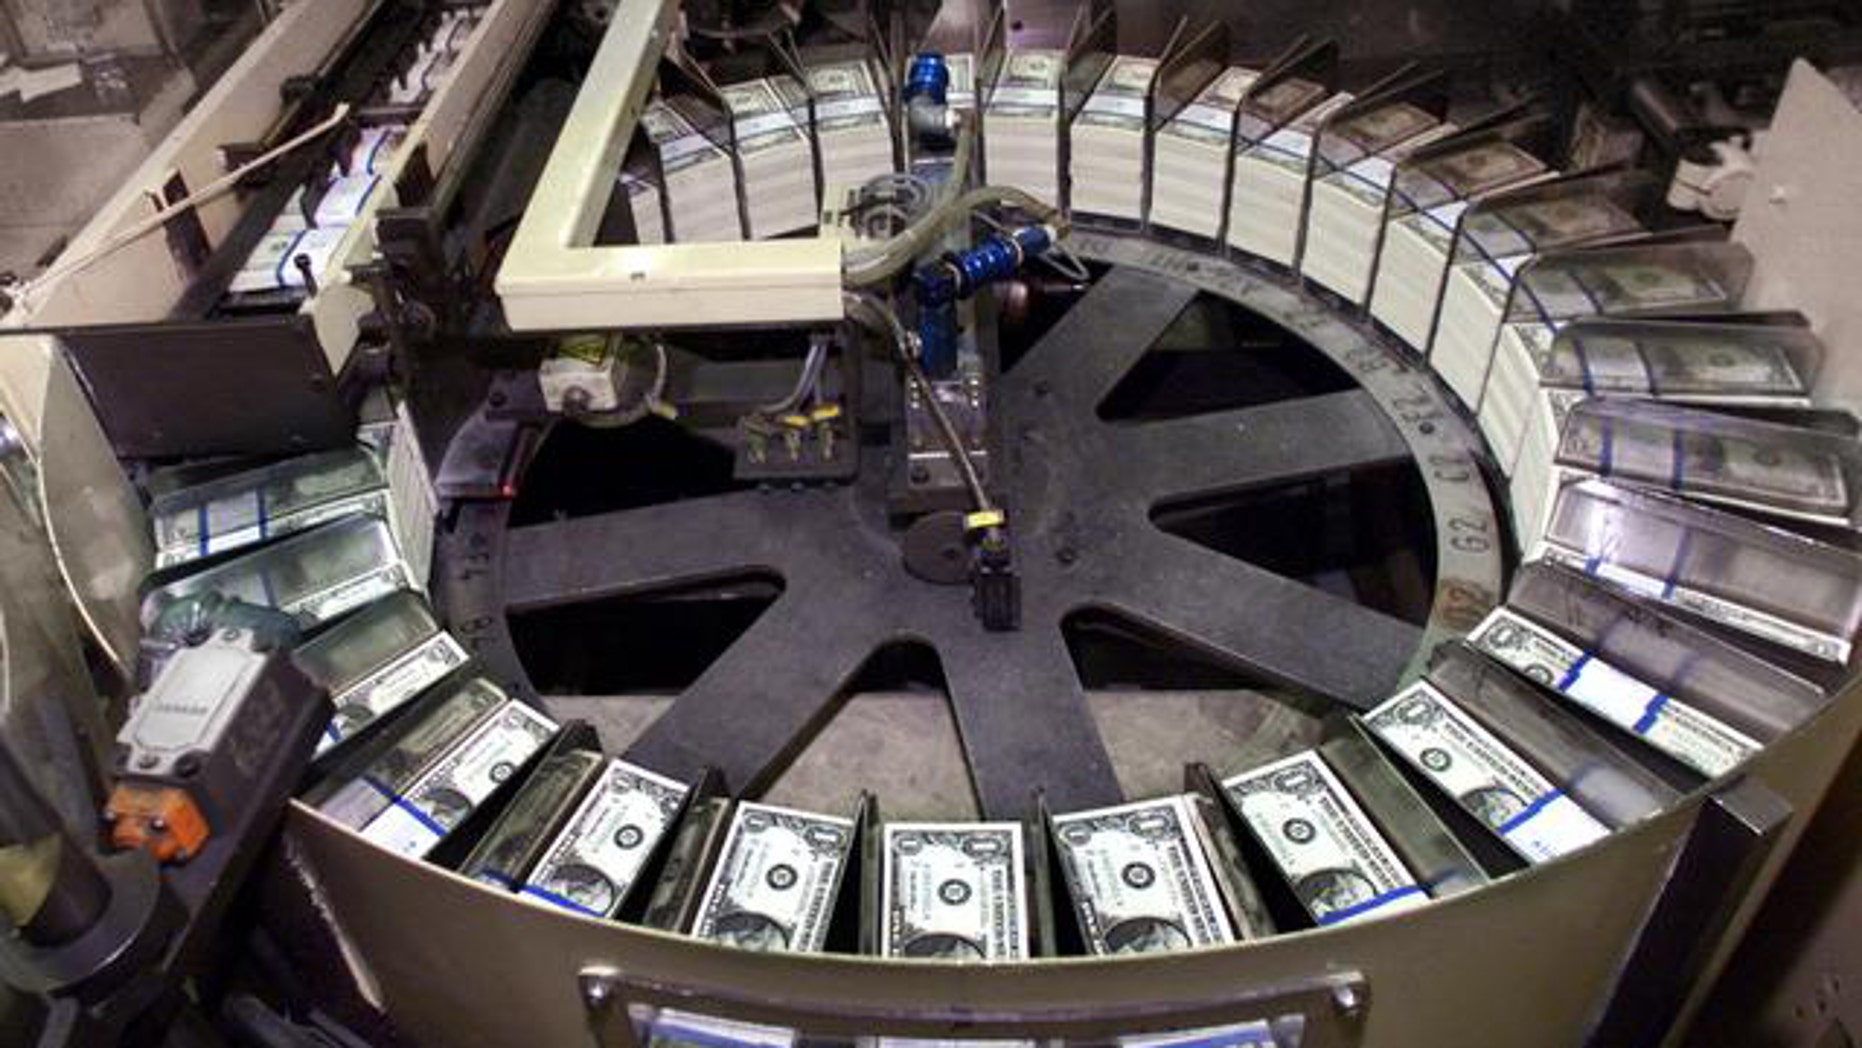 Stacks of dollar bills are readied for shipment at the U.S. Bureau of Engraving and Printing in Washington, D.C.